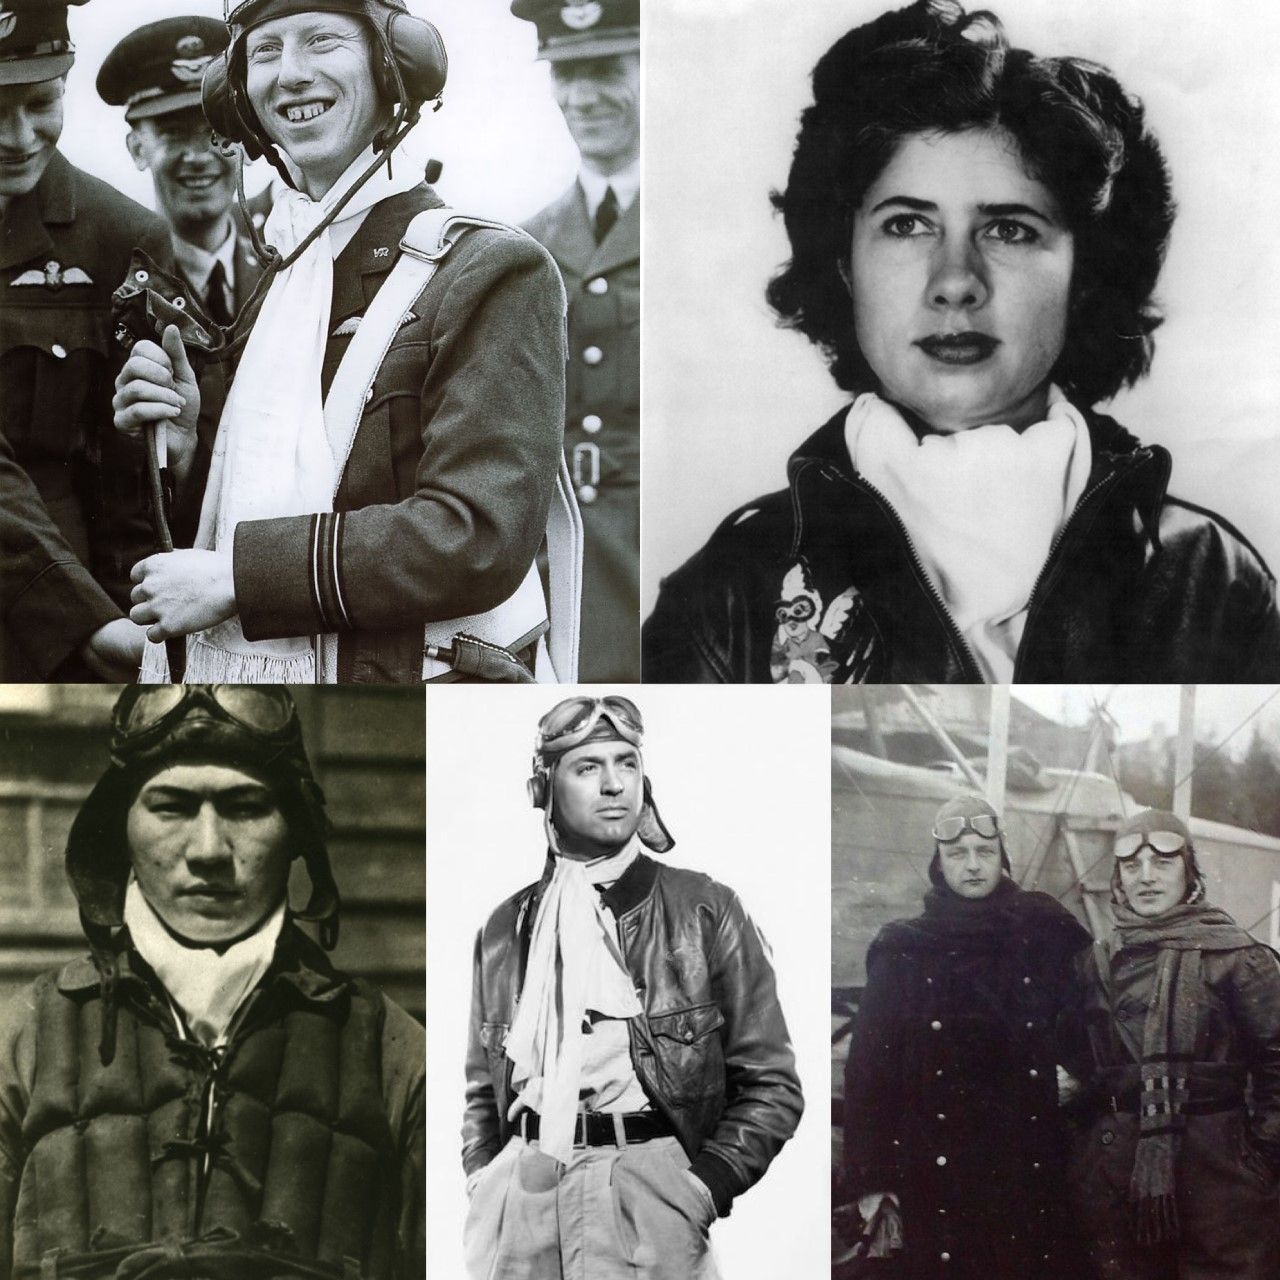 """Top Left:  Pilot lands with  white scarf   Top Right:  Pilot """"Tommy"""" Tompkins in  scarf   Bottom Left:  Kamikaze Pilot in  scarf   Bottom middle:  Pilot posing in  scarf   Bottom Right:  WWI Pilots pose in  scarves"""